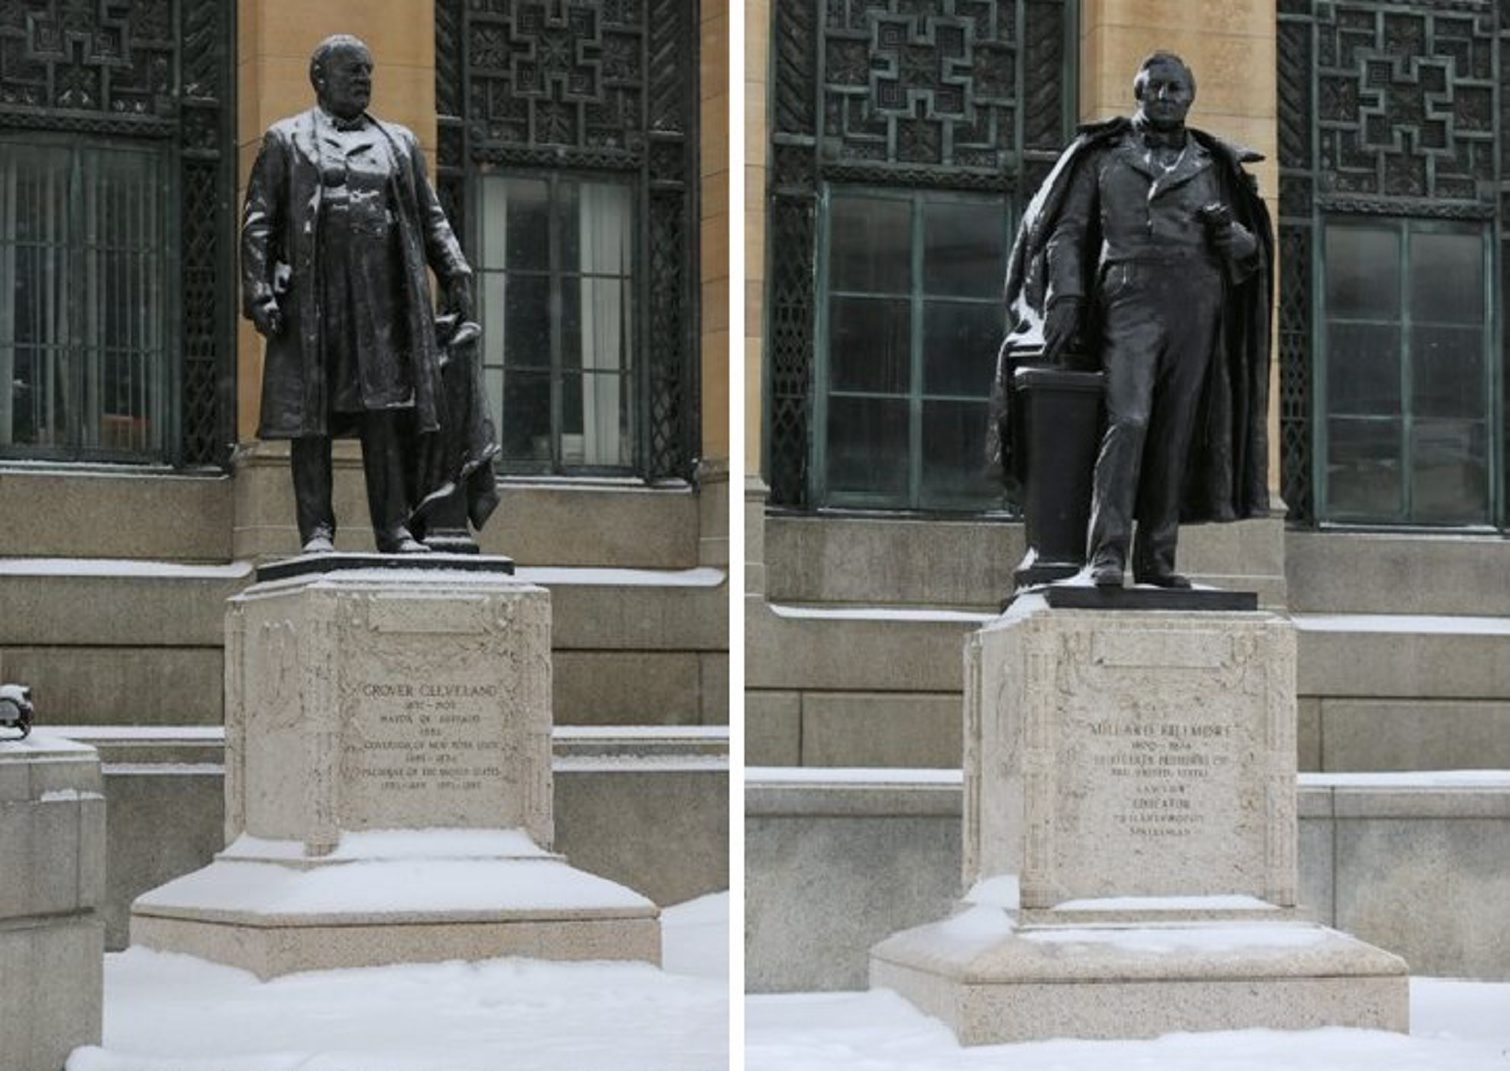 Bronze statues at Buffalo City Hall commemorate Grover Cleveland, left, and Millard Fillmore. (Charles Lewis/Buffalo News)